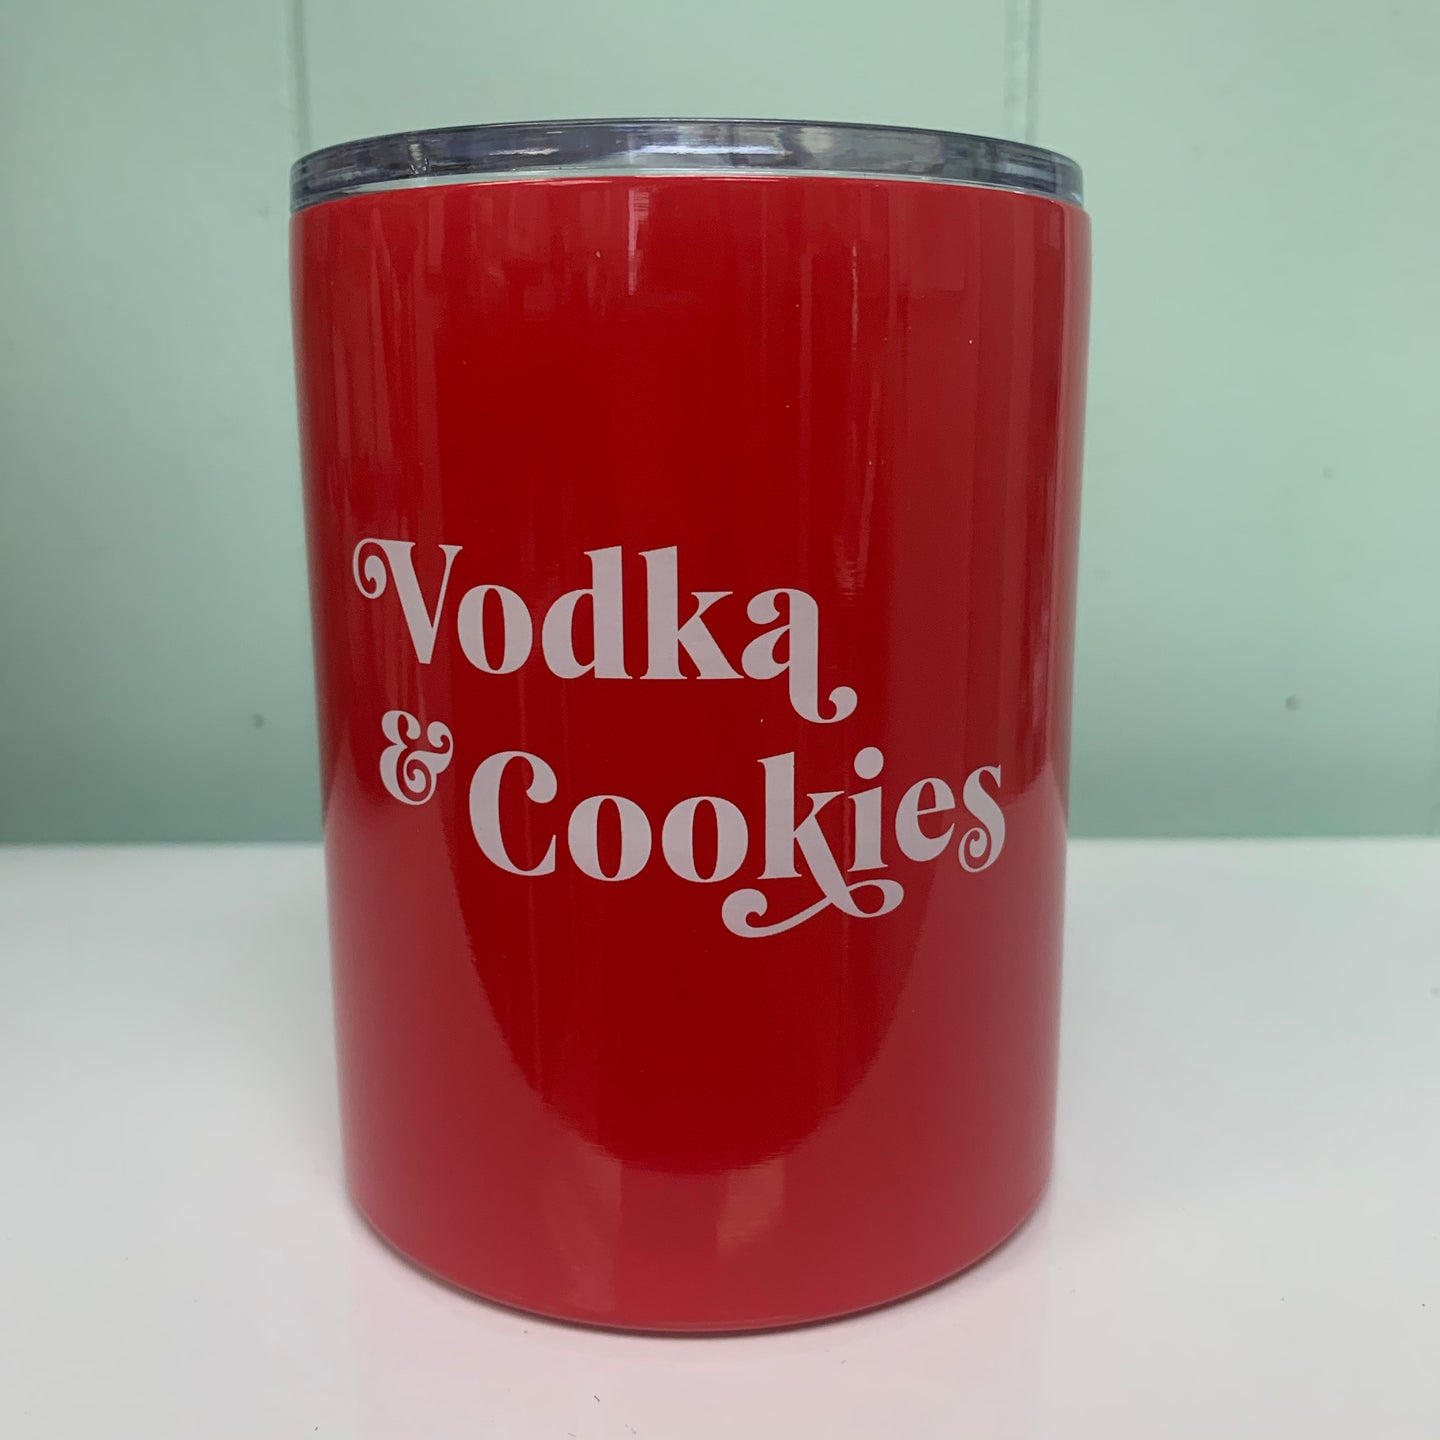 Vodka & Cookies Tumbler